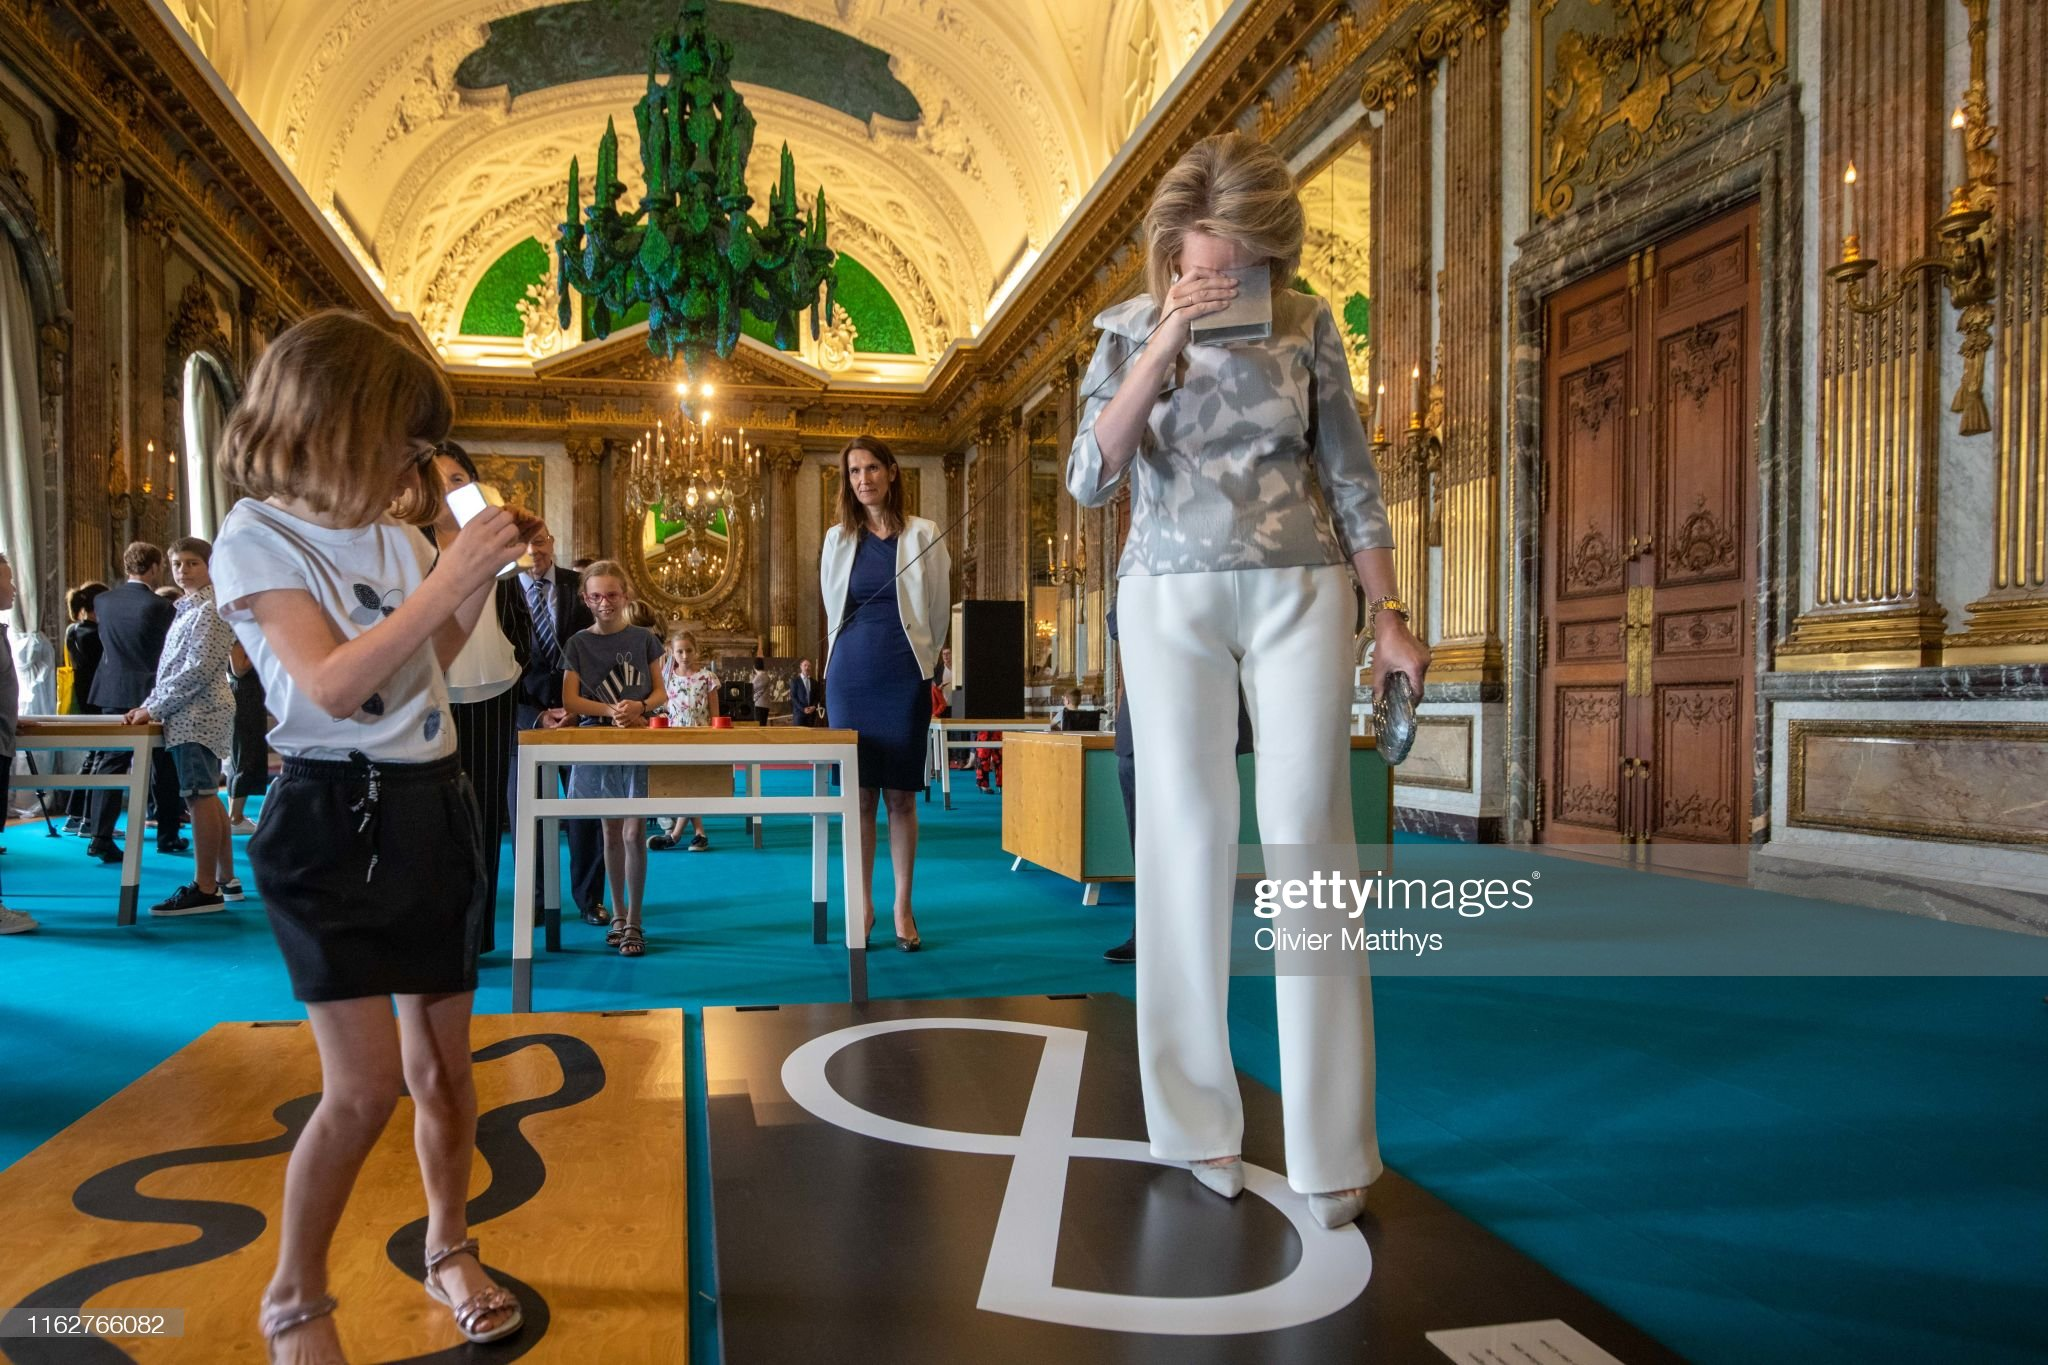 CASA REAL BELGA - Página 54 Queen-mathilde-of-belgium-attends-the-technopolis-section-of-the-at-picture-id1162766082?s=2048x2048